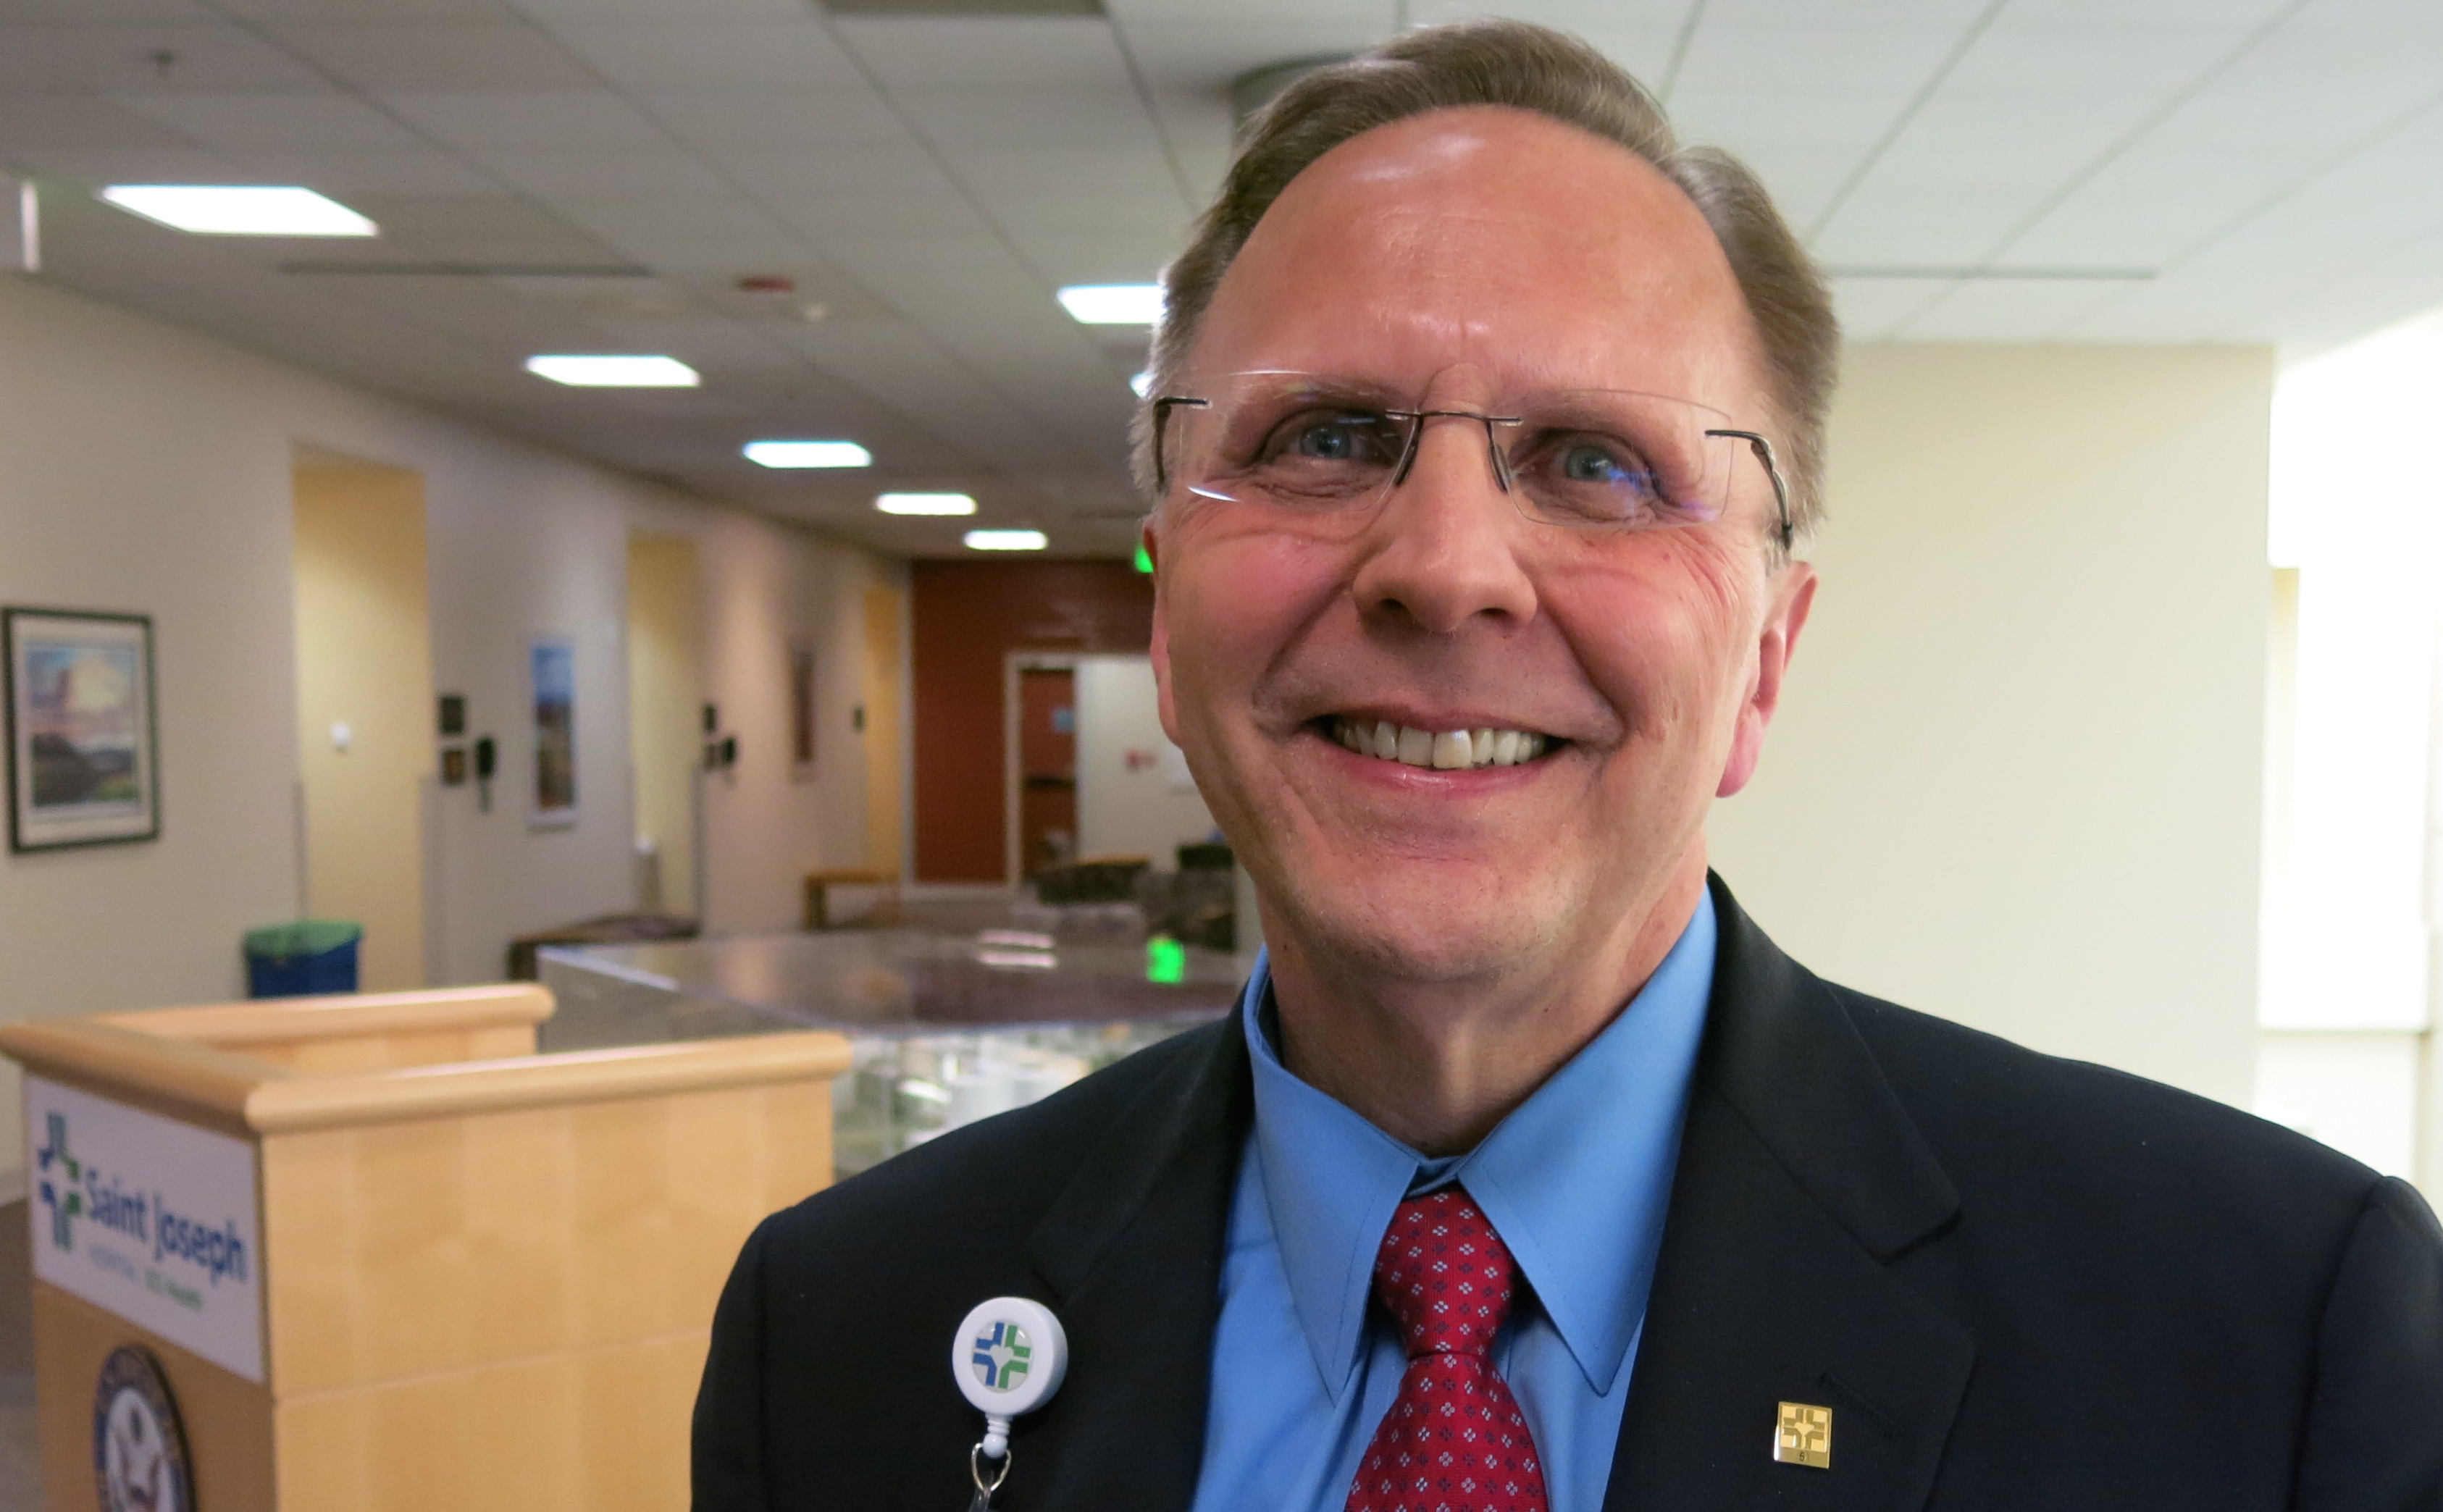 Photo: Michael Slubowski, Medically Assisted Death Opt Out